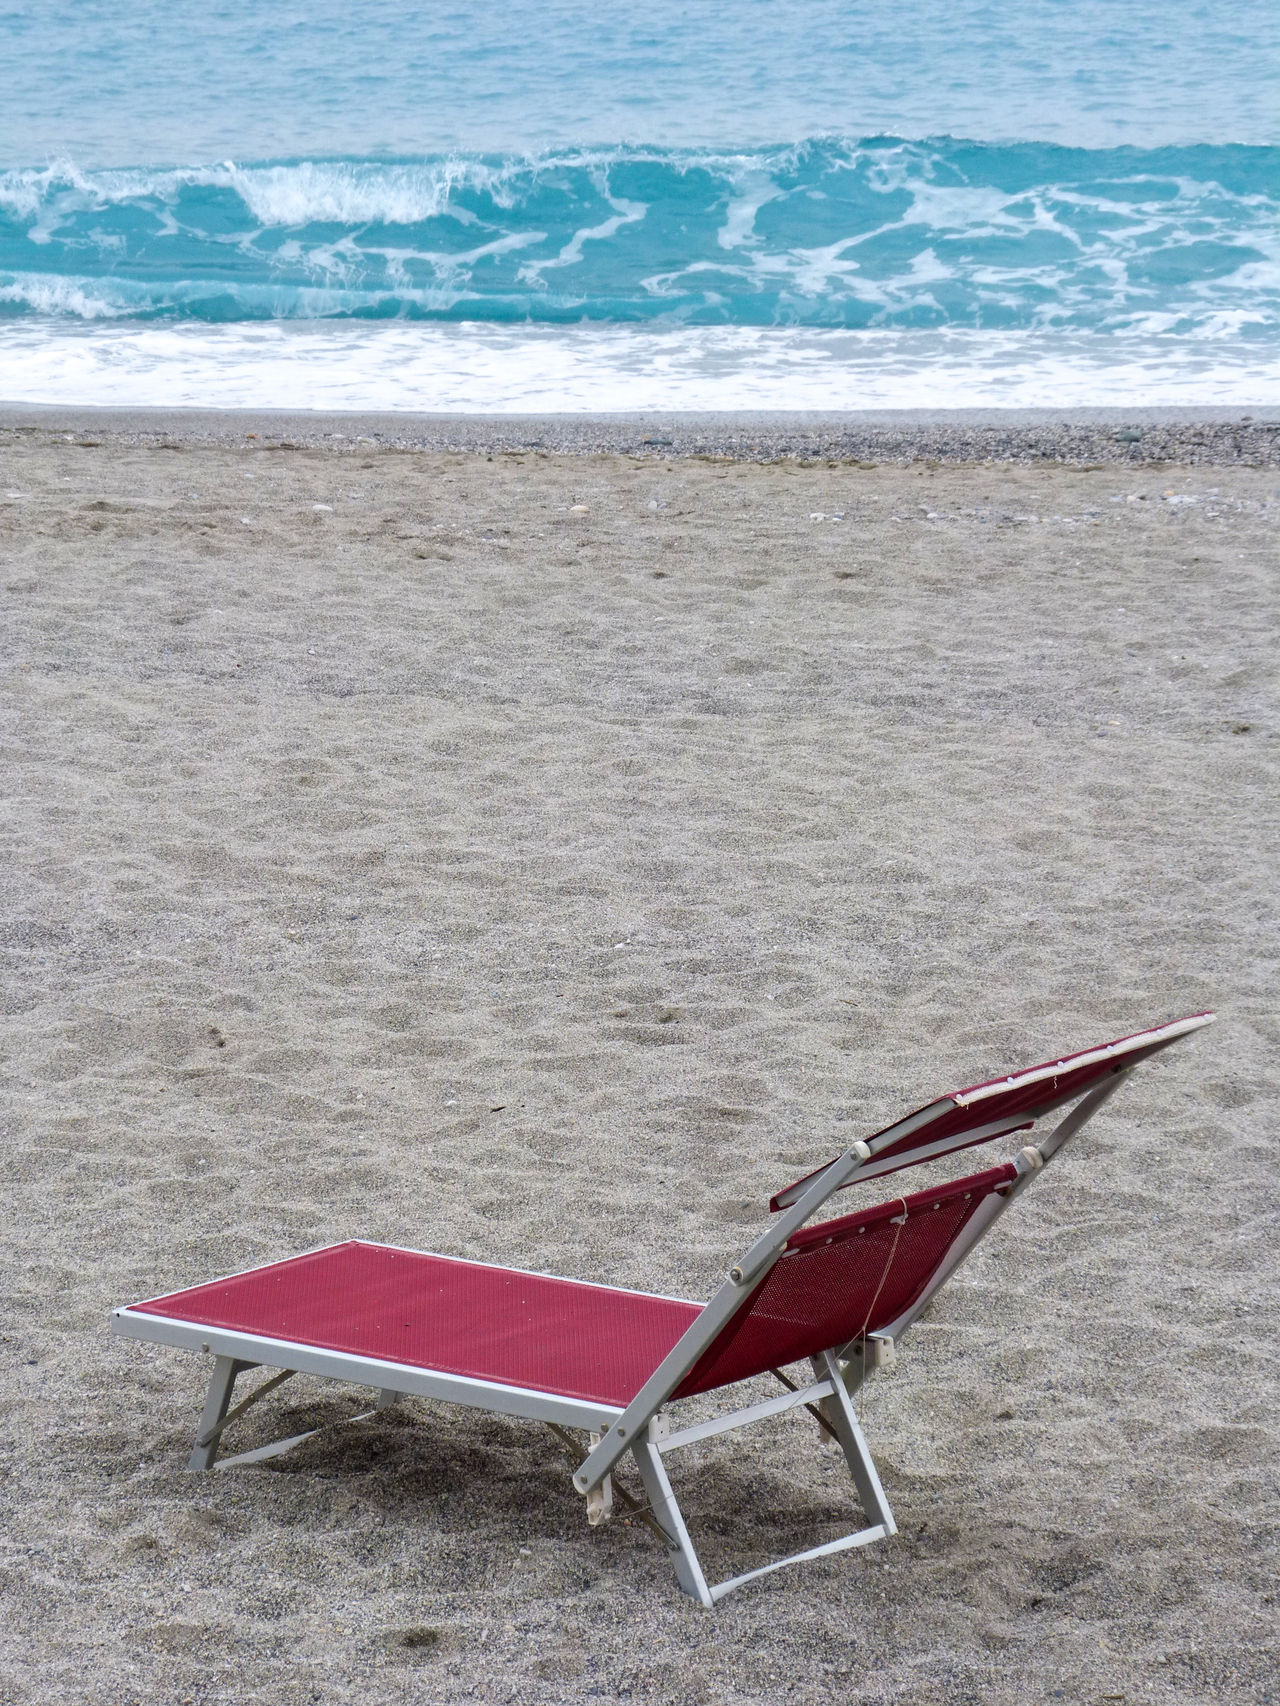 Red sunbed Beach Sand Sea Shore Outdoors Water Wave Nature Sunbed Sunchair Sand Beach Liguria Italy Scenics